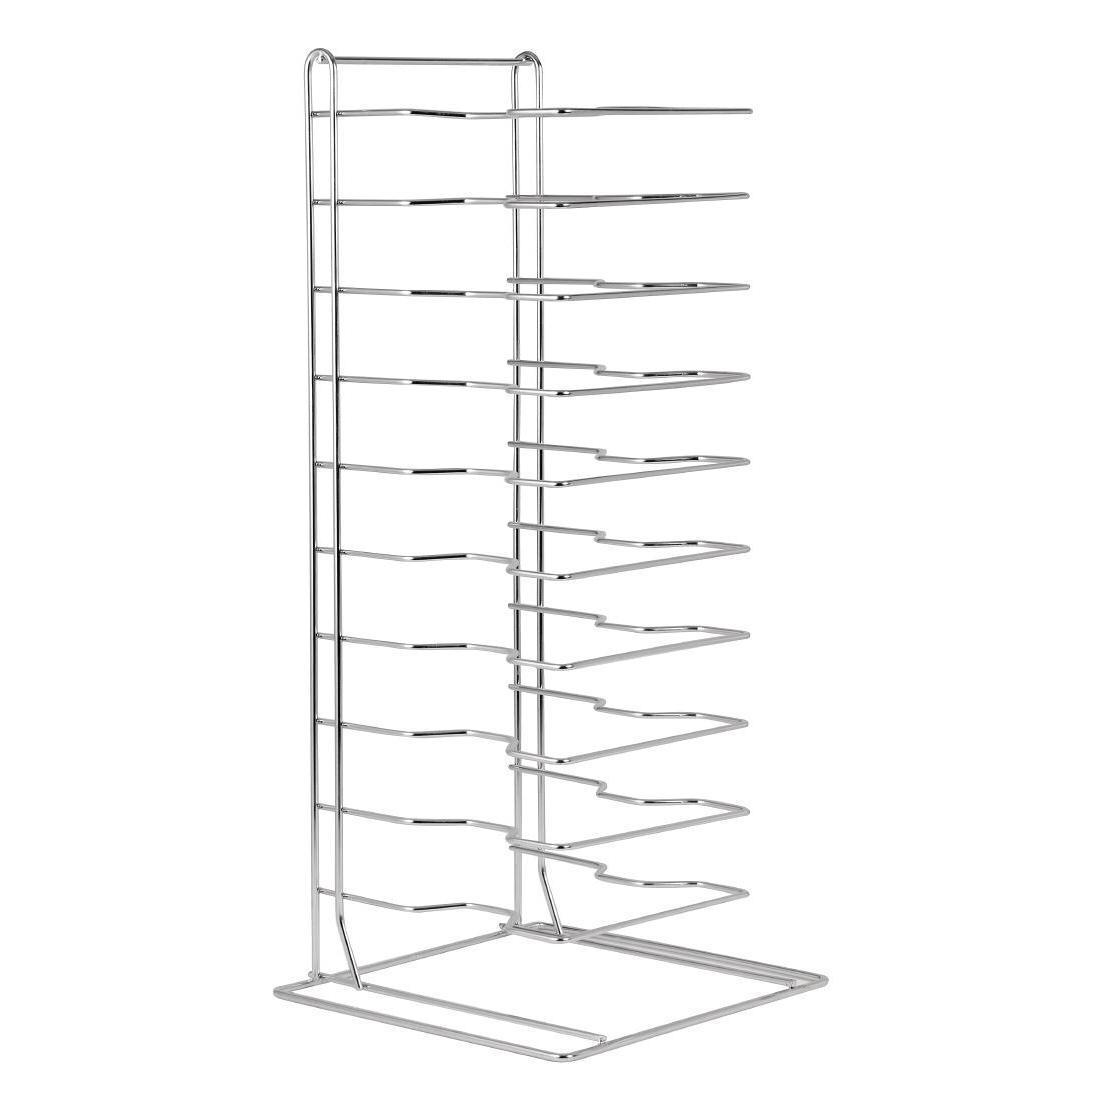 Vogue Pizza Pan Stacking Rack 11 Slot - Each - F026